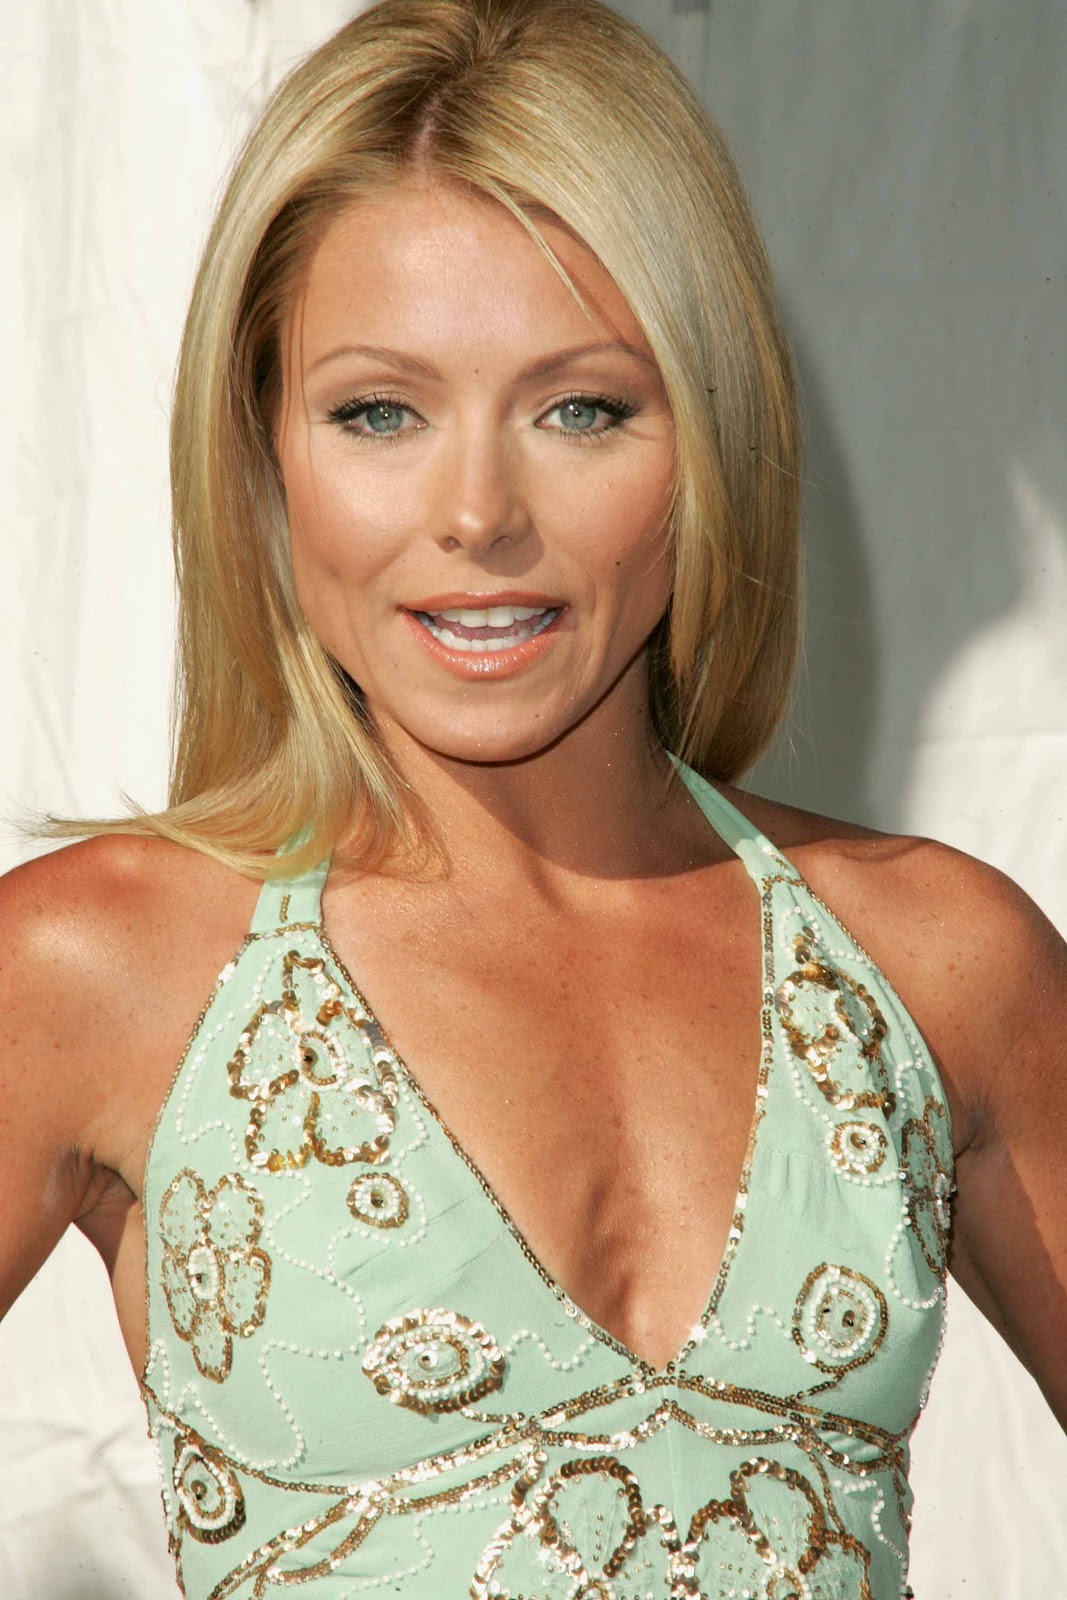 Kelly Ripa Cuts Her Hair - YouTube, Here's how to copy Kelly Ripa's